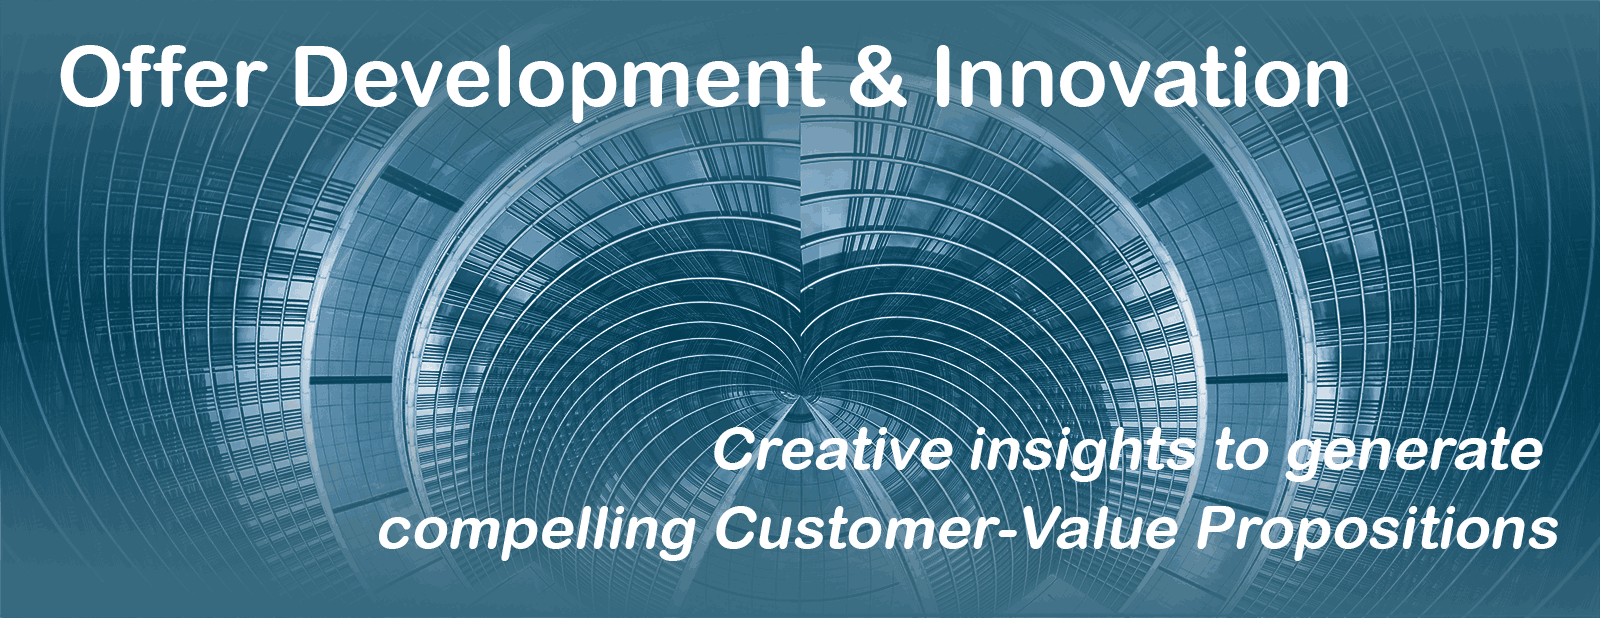 Offer Development & Innovation - Creative insights to generate compelling Customer Value propositions